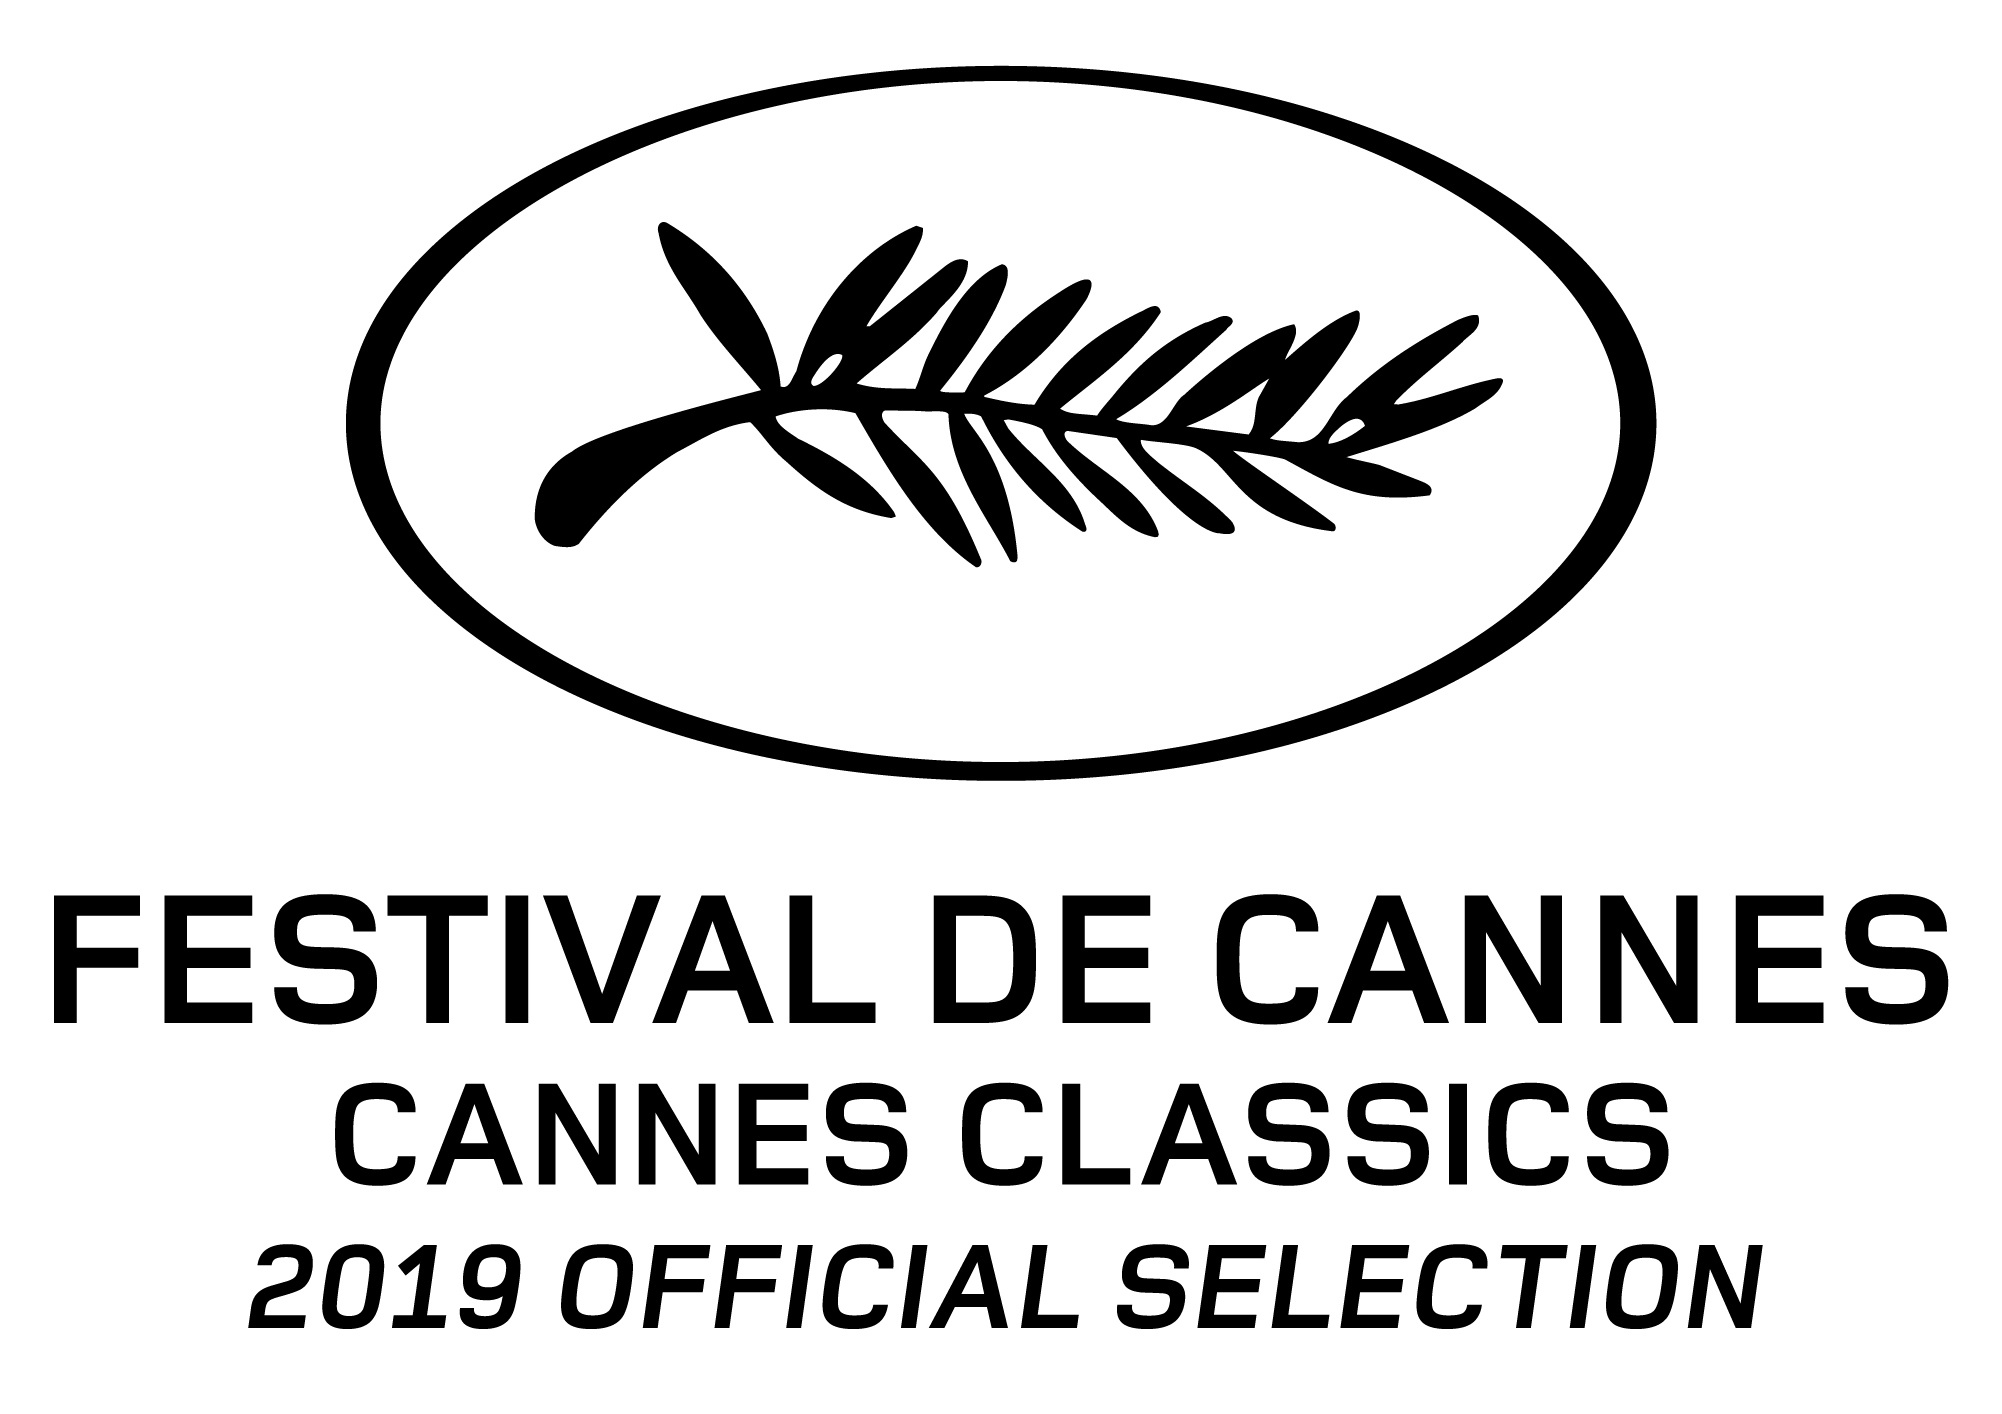 LOGOS CANNES_ENG_CANNES CLASSICS_2019.jpg